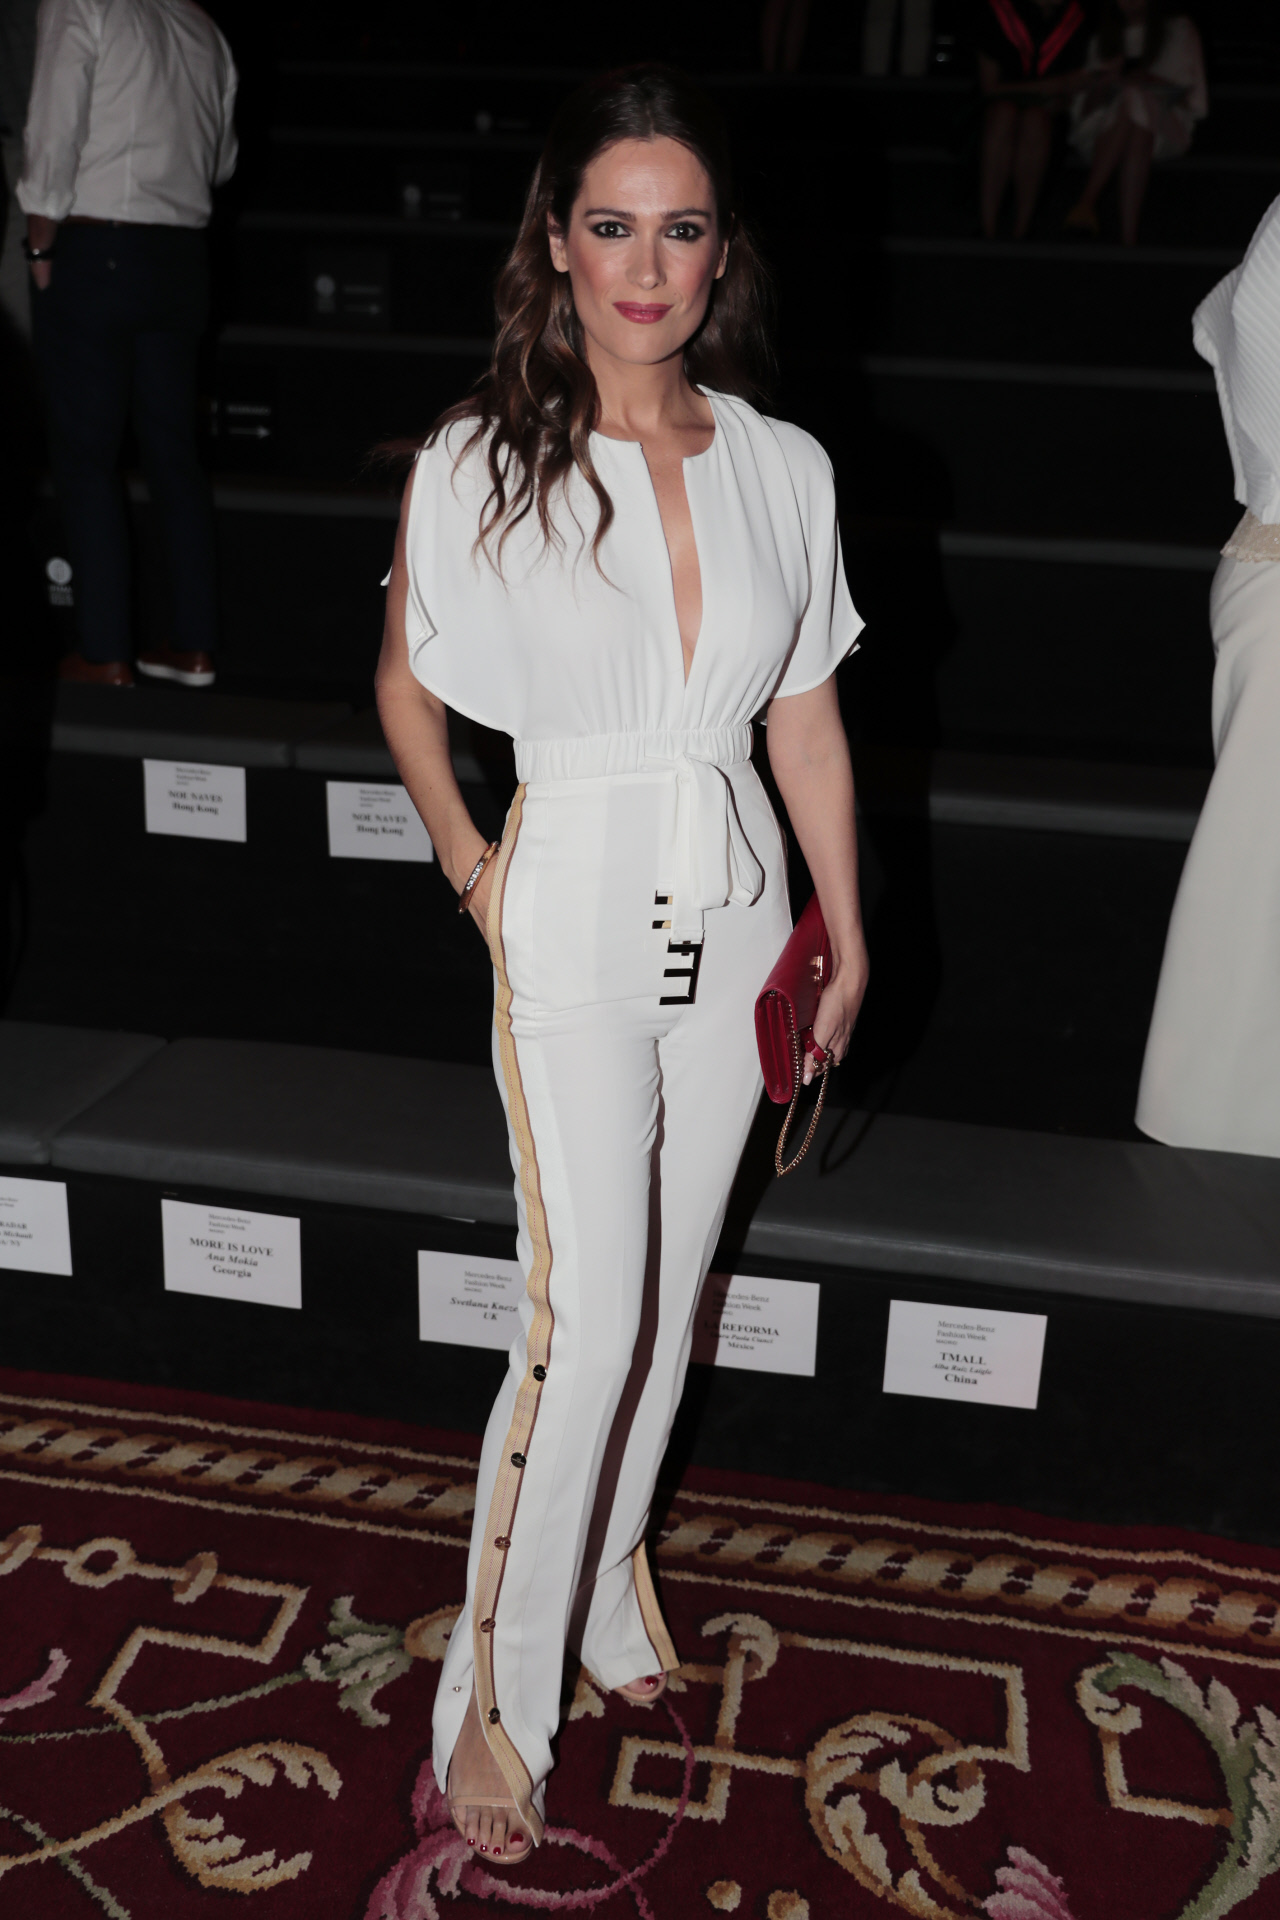 Model and presenter Mar Saura at the front row of RobertoVerino collection runway during Pasarela Cibeles - Mercedes-Benz Fashion Week Madrid 2018, in Madrid, on Monday 9th July, 2018